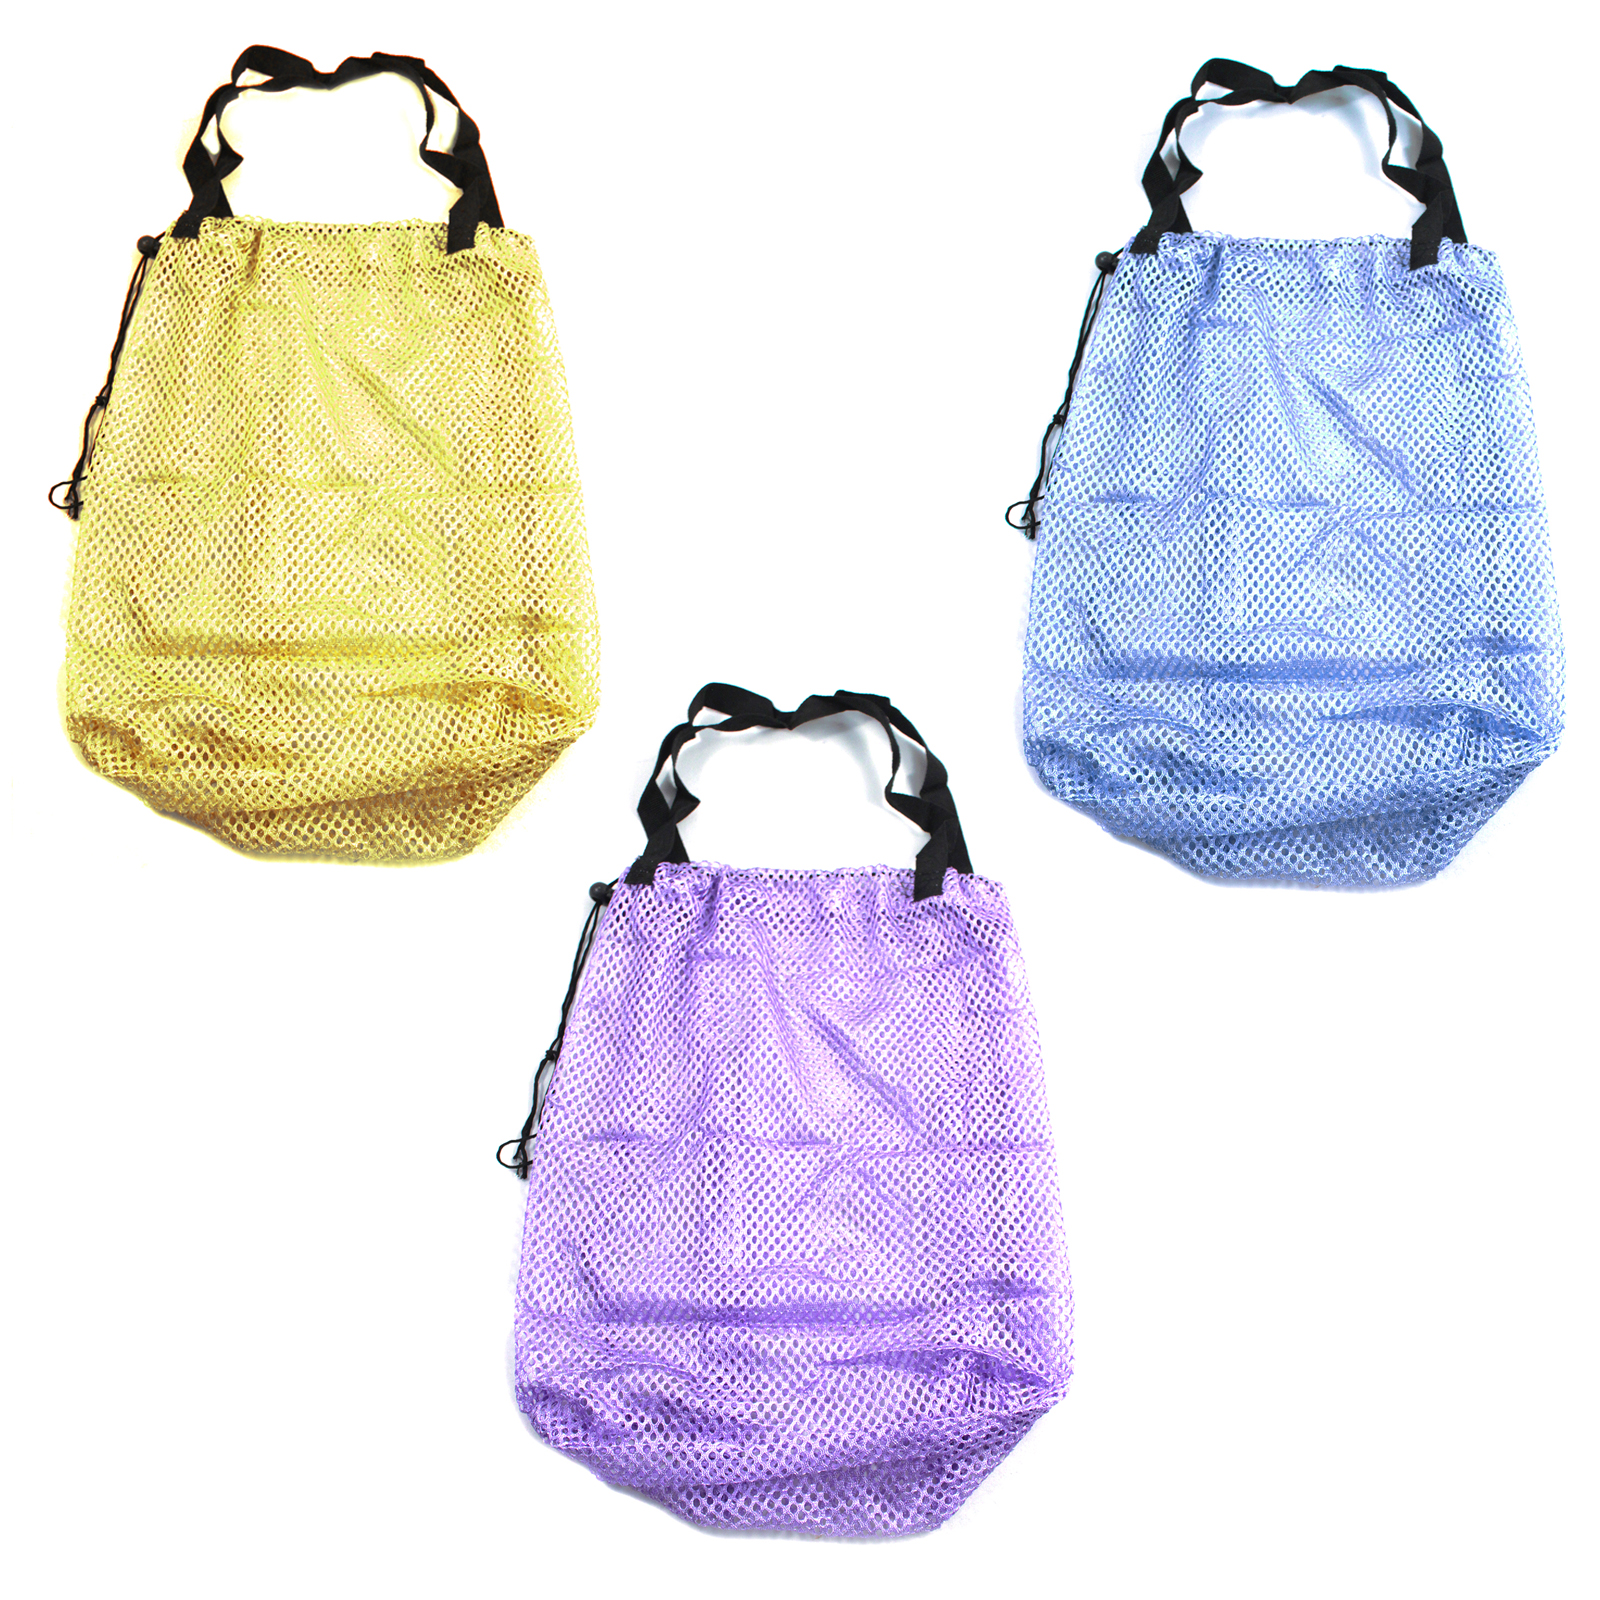 Mesh Multipurpose Bag Grocery Shopping Tote Sturdy Nylon Handle Drawstring Close